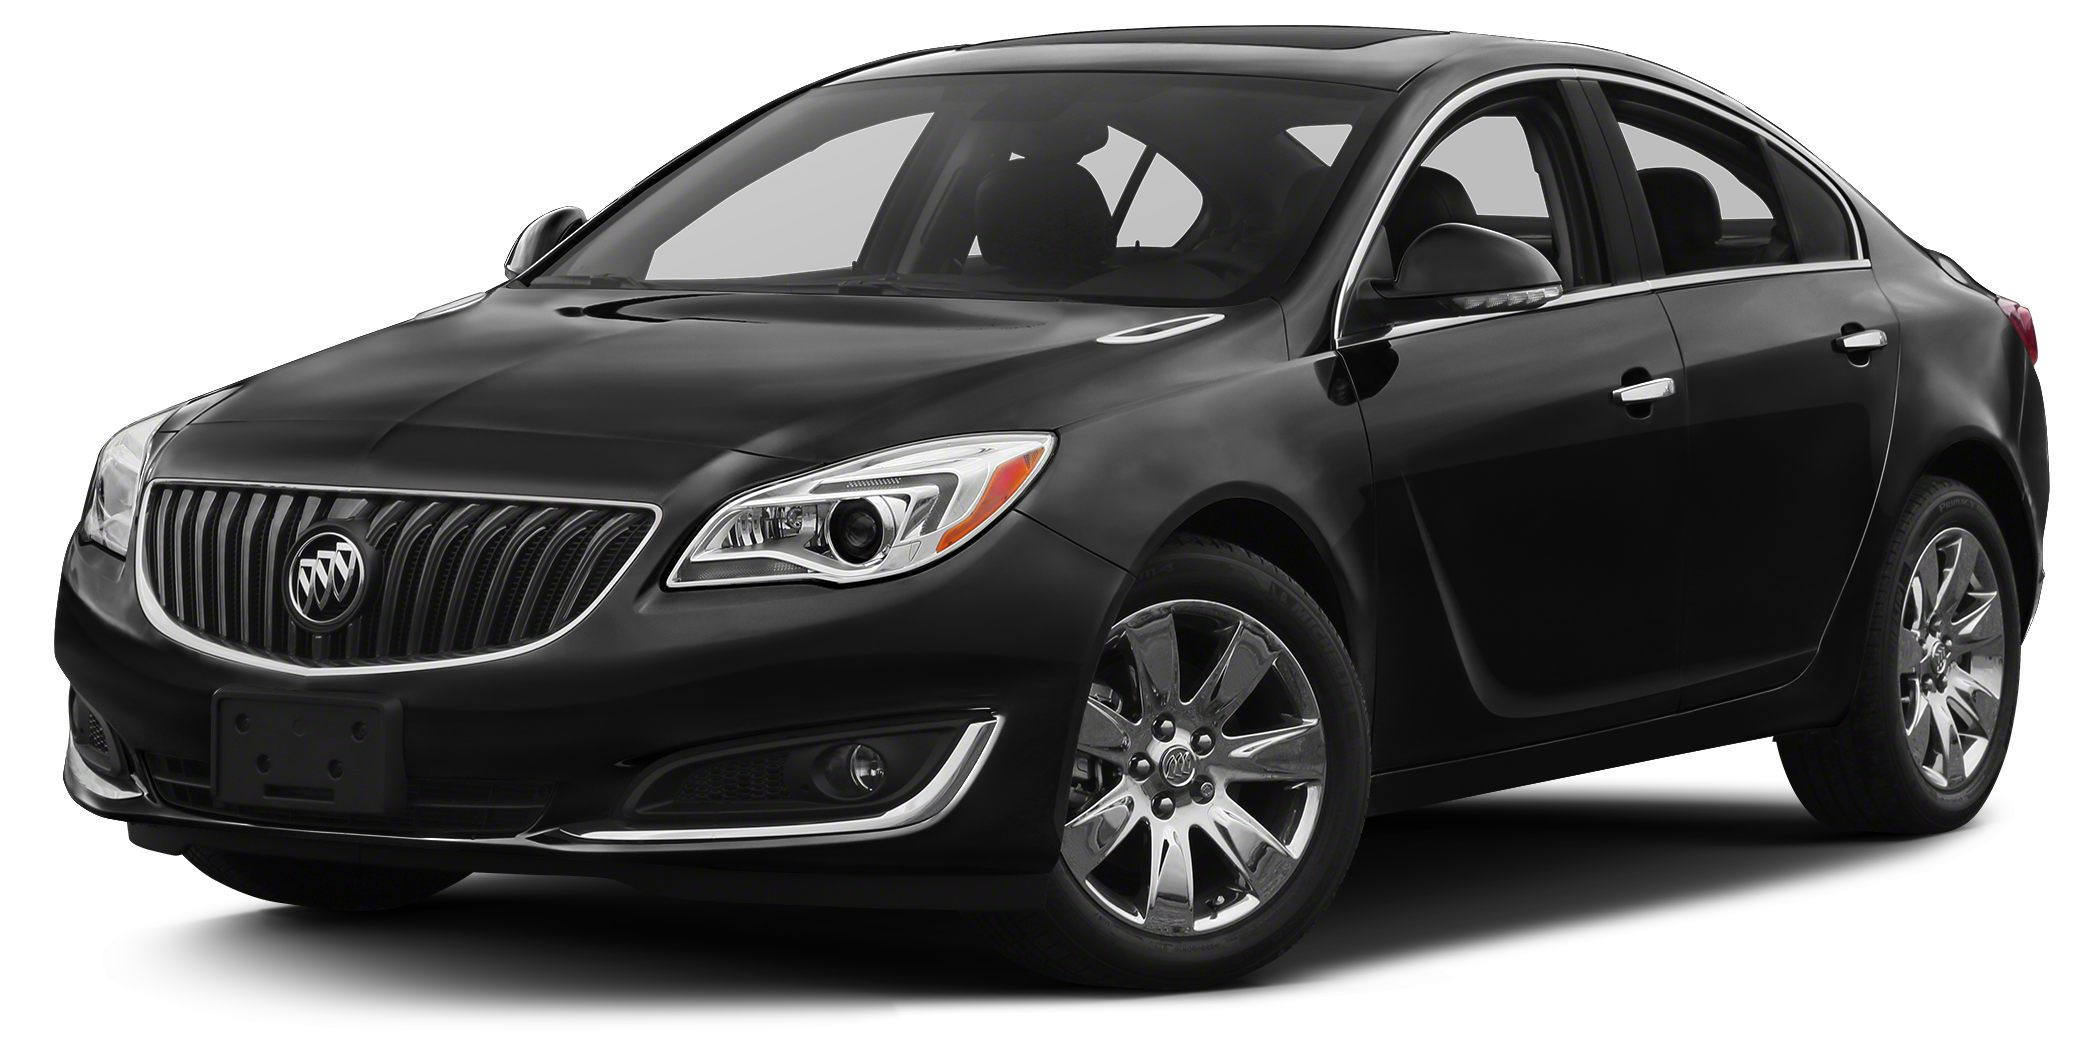 2016 Buick Regal Turbo Premium II Miles 1Color Black Onyx Stock RE6042 VIN 2G4GT5GX1G9197701